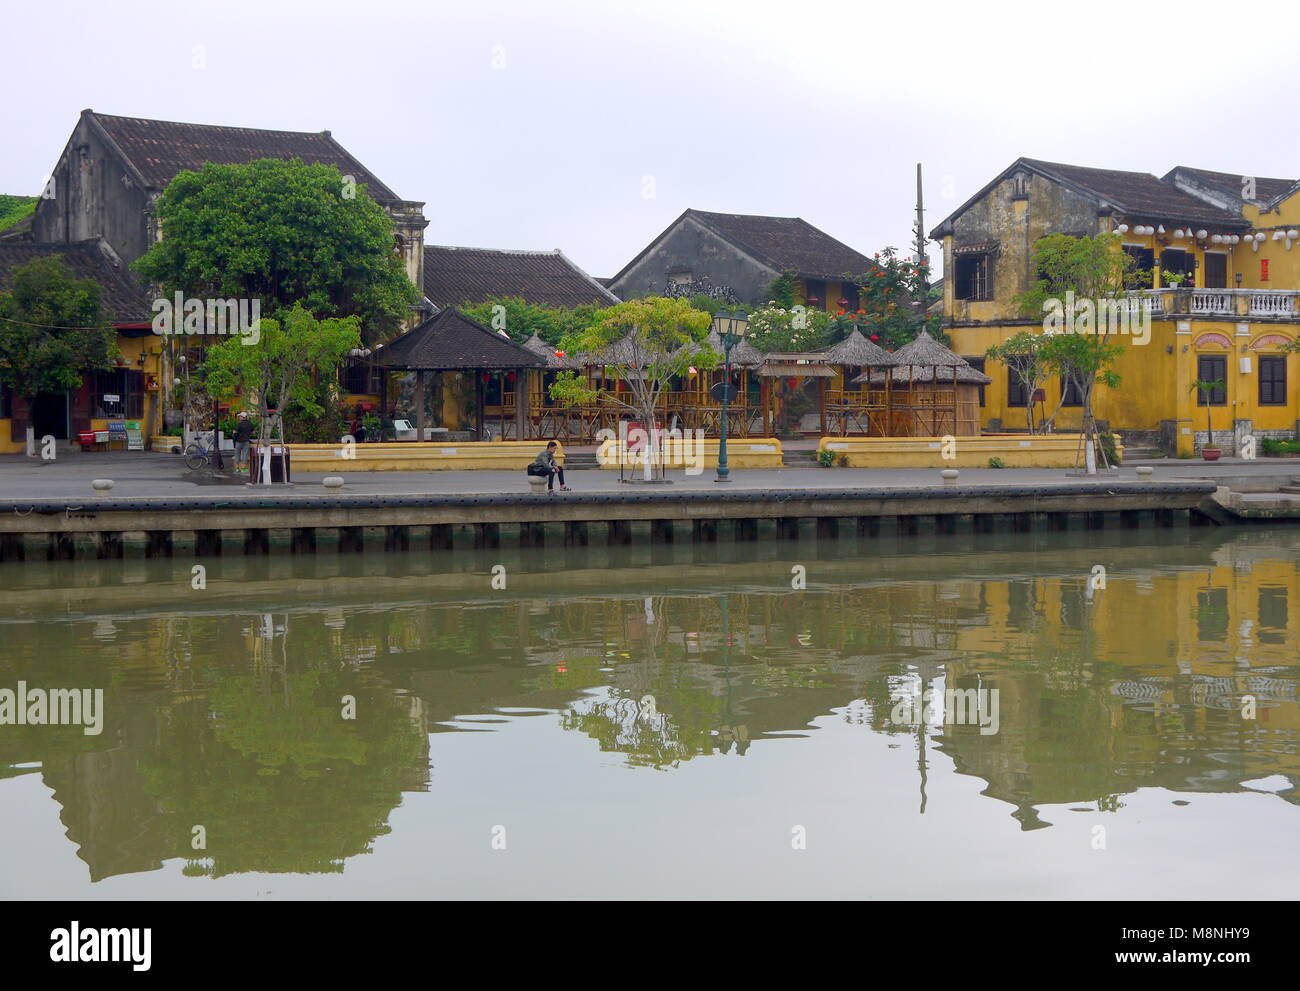 Hoi An, Vietnam - MARCH 17, 2018: Quiet early morning in the old town center of Hoi An Vietnam with view of typical - Stock Image